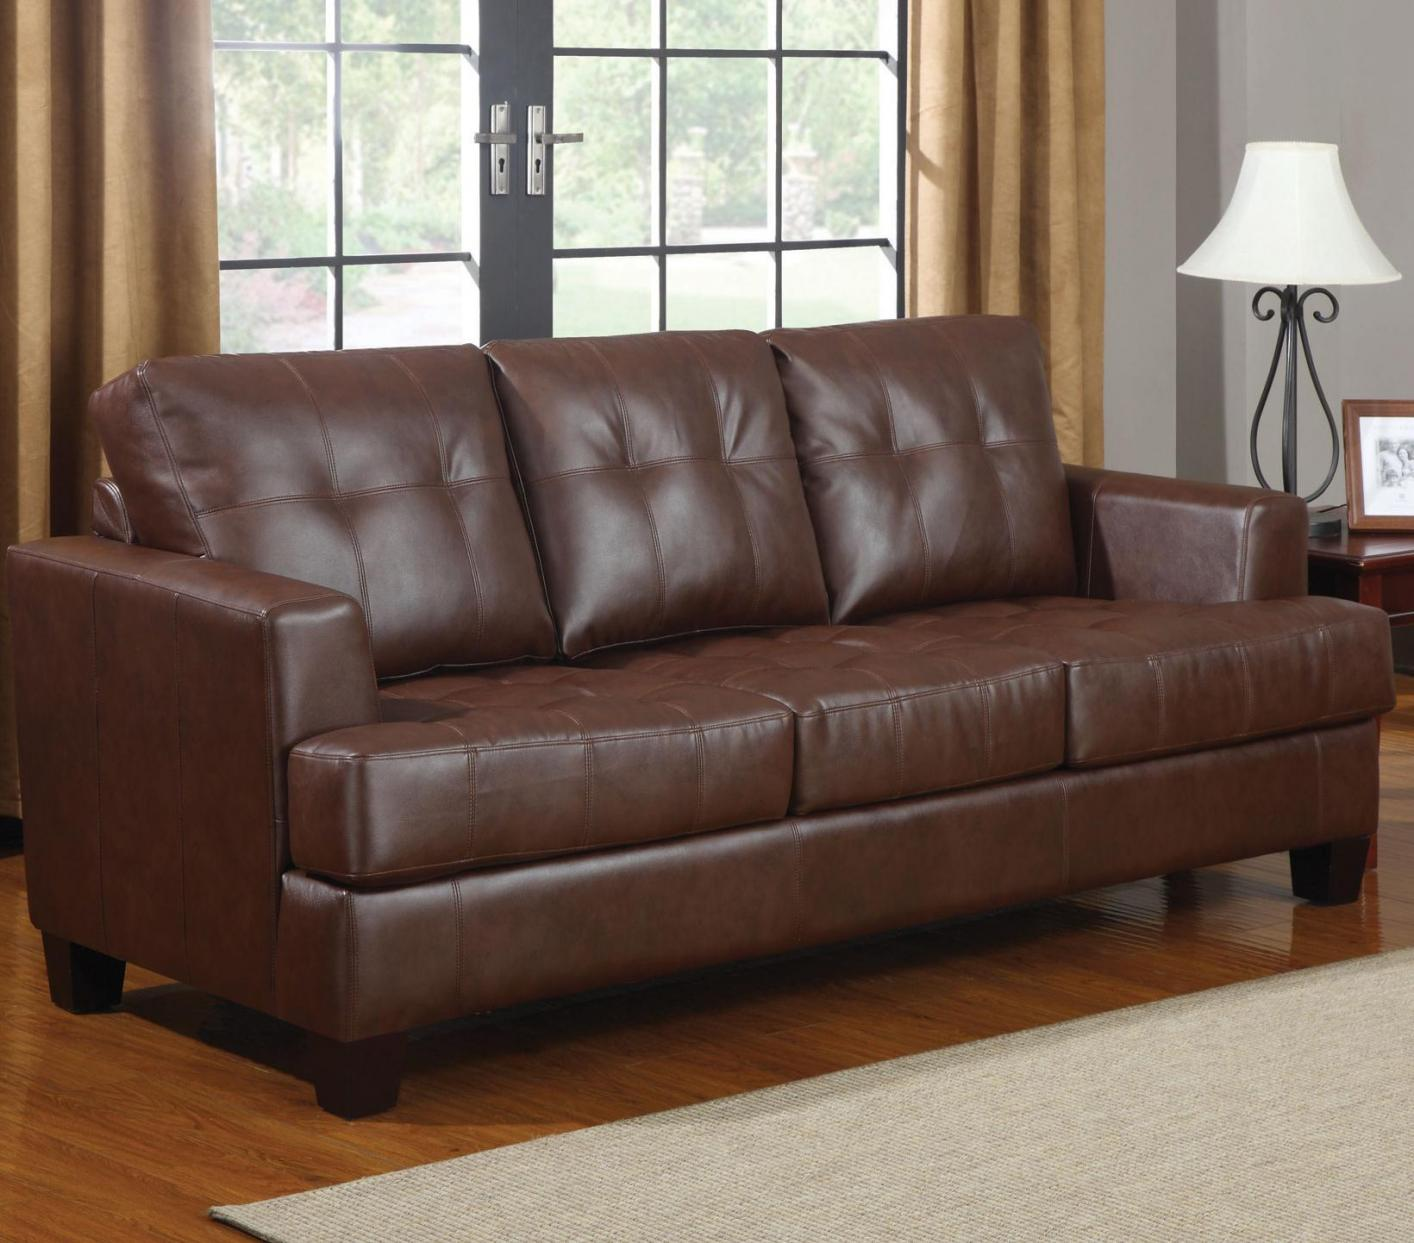 Samuel Brown Leather Sofa Bed Samuel Brown Leather Sofa Bed ...